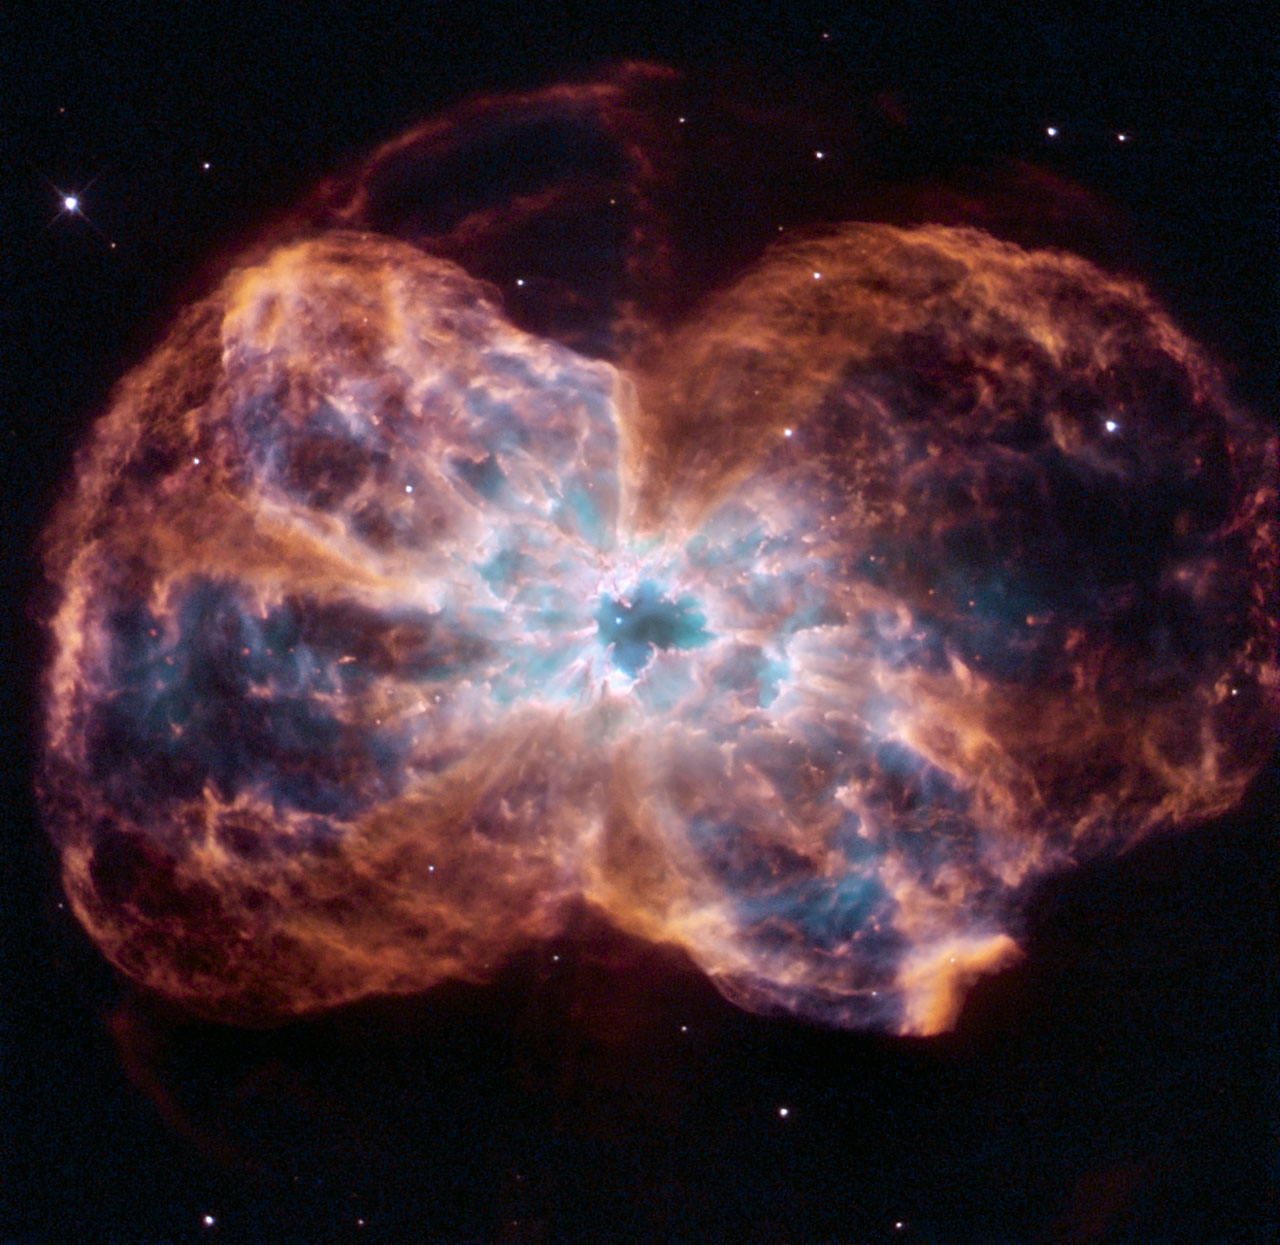 Hubble Views a Colorful Demise of a Sun-like Star